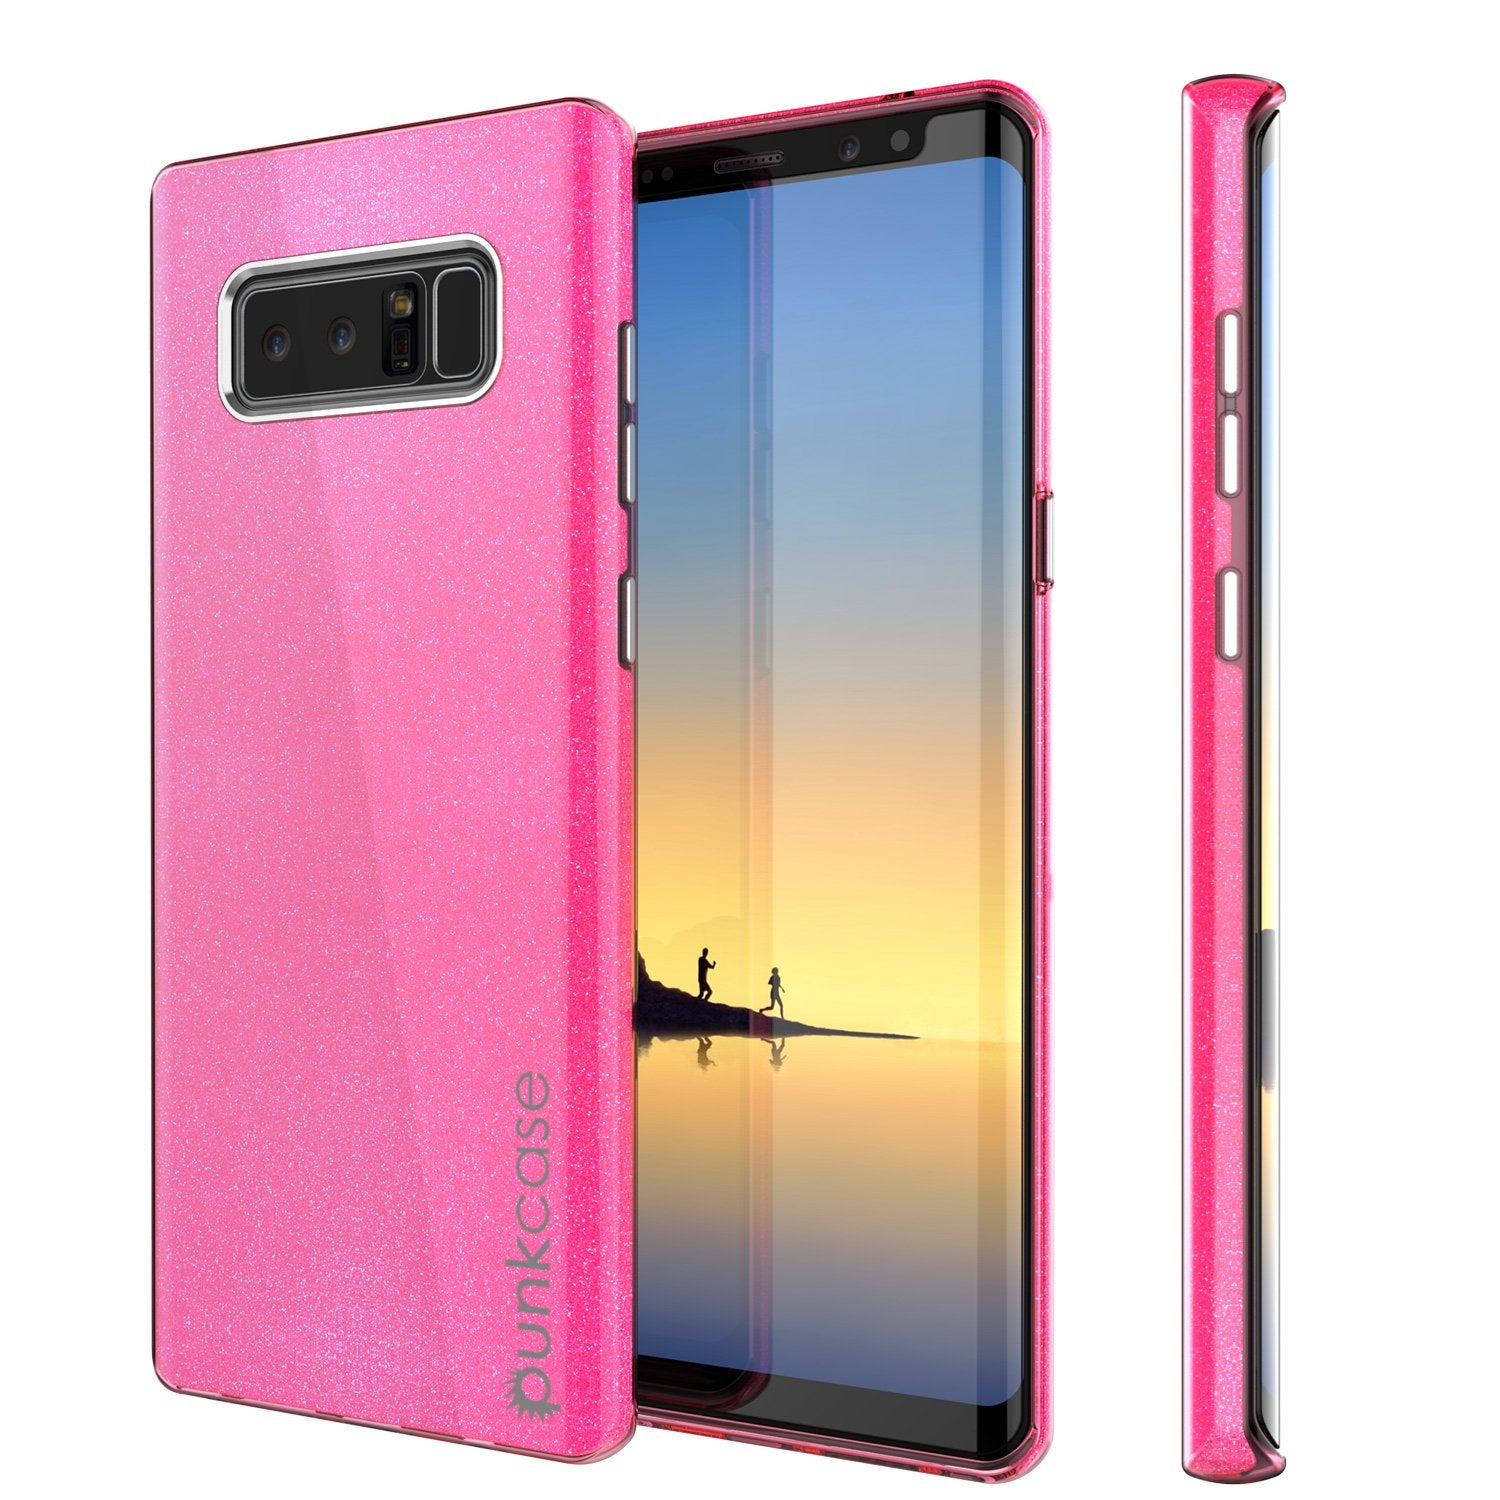 Galaxy Note 8 Case, Punkcase Galactic 2.0 Series Ultra Slim Protective Armor [Pink]